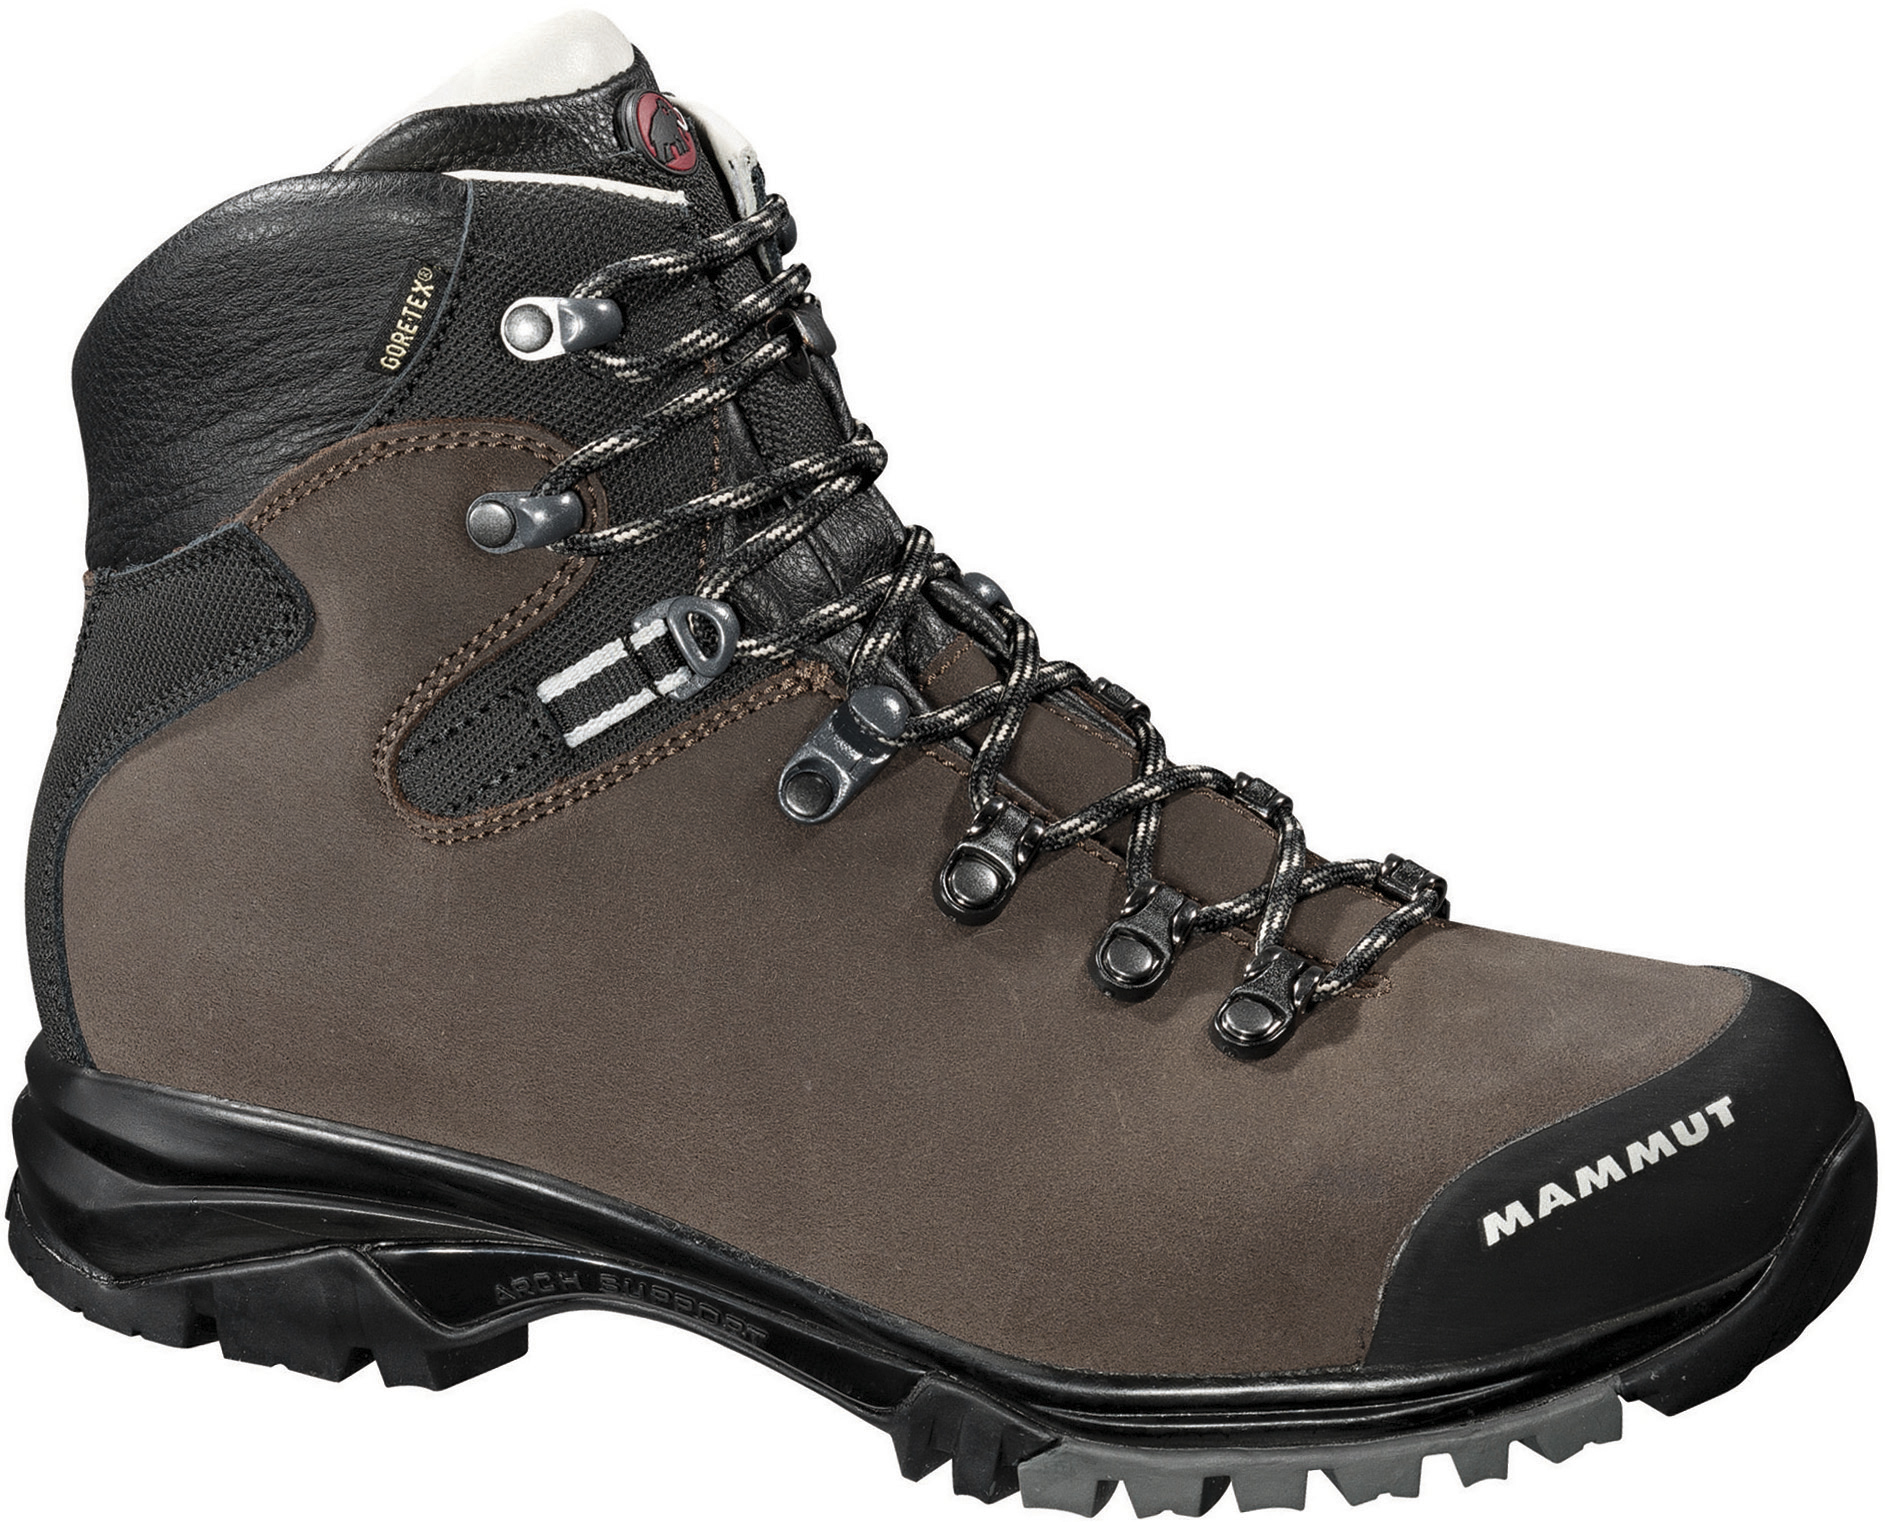 82f680121bc Mammut Brecon GTX Backpacking Boots - Men's